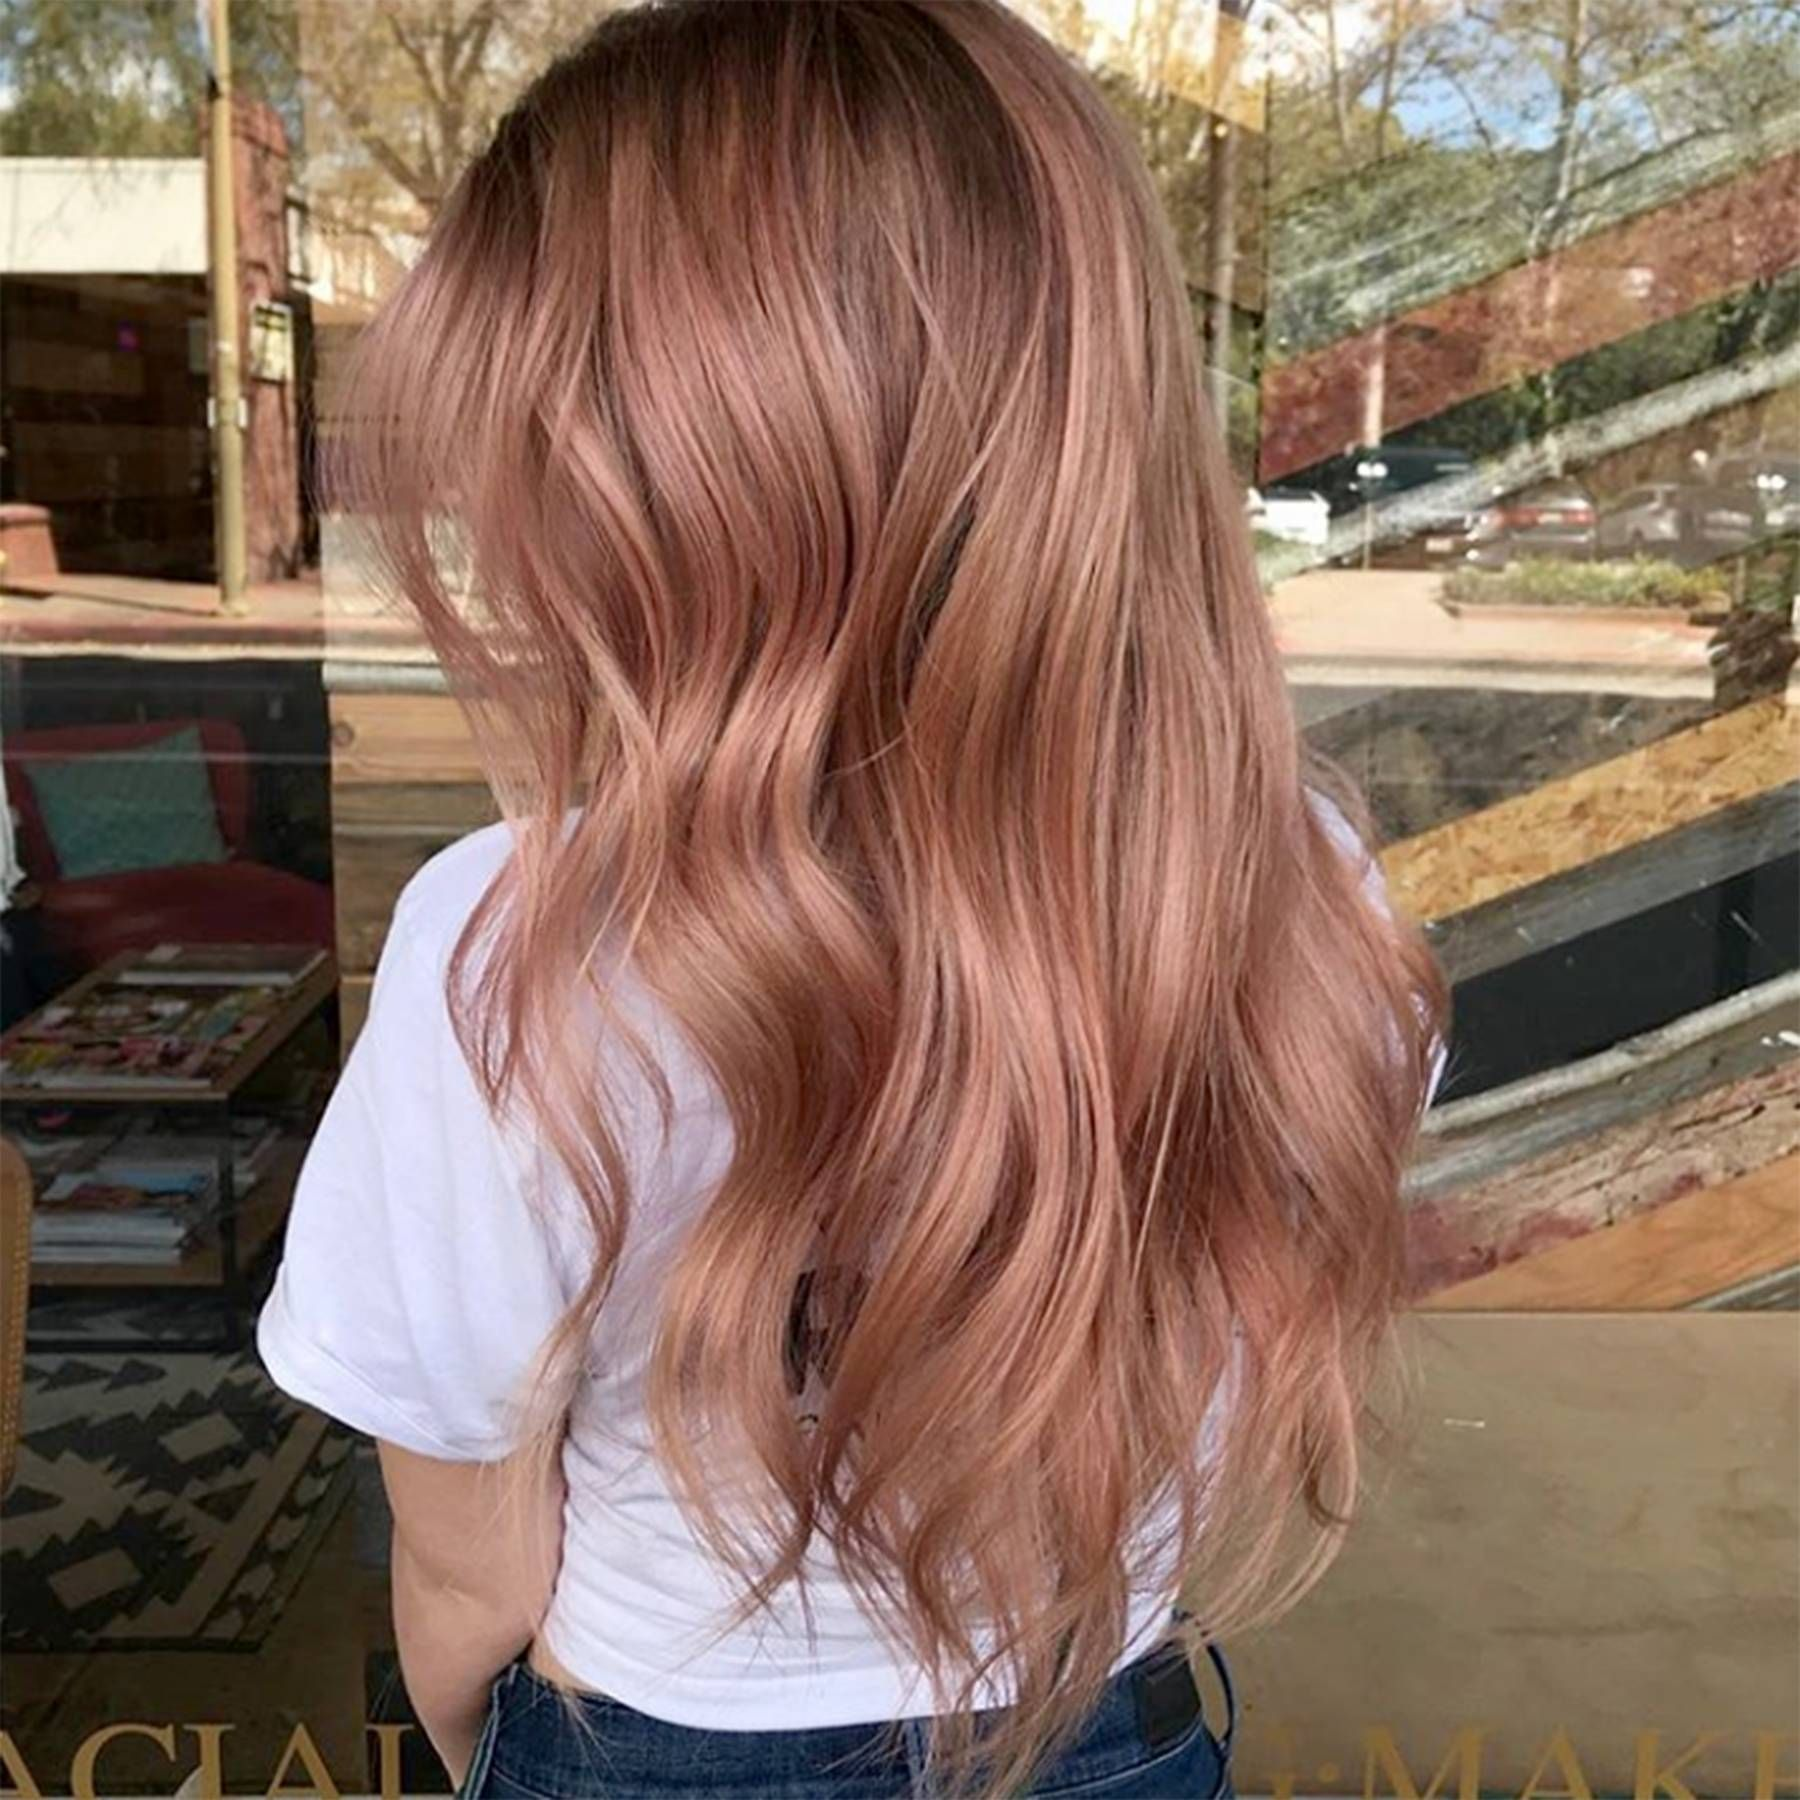 This is why you absolutely should dye your hair rose gold in lockdown